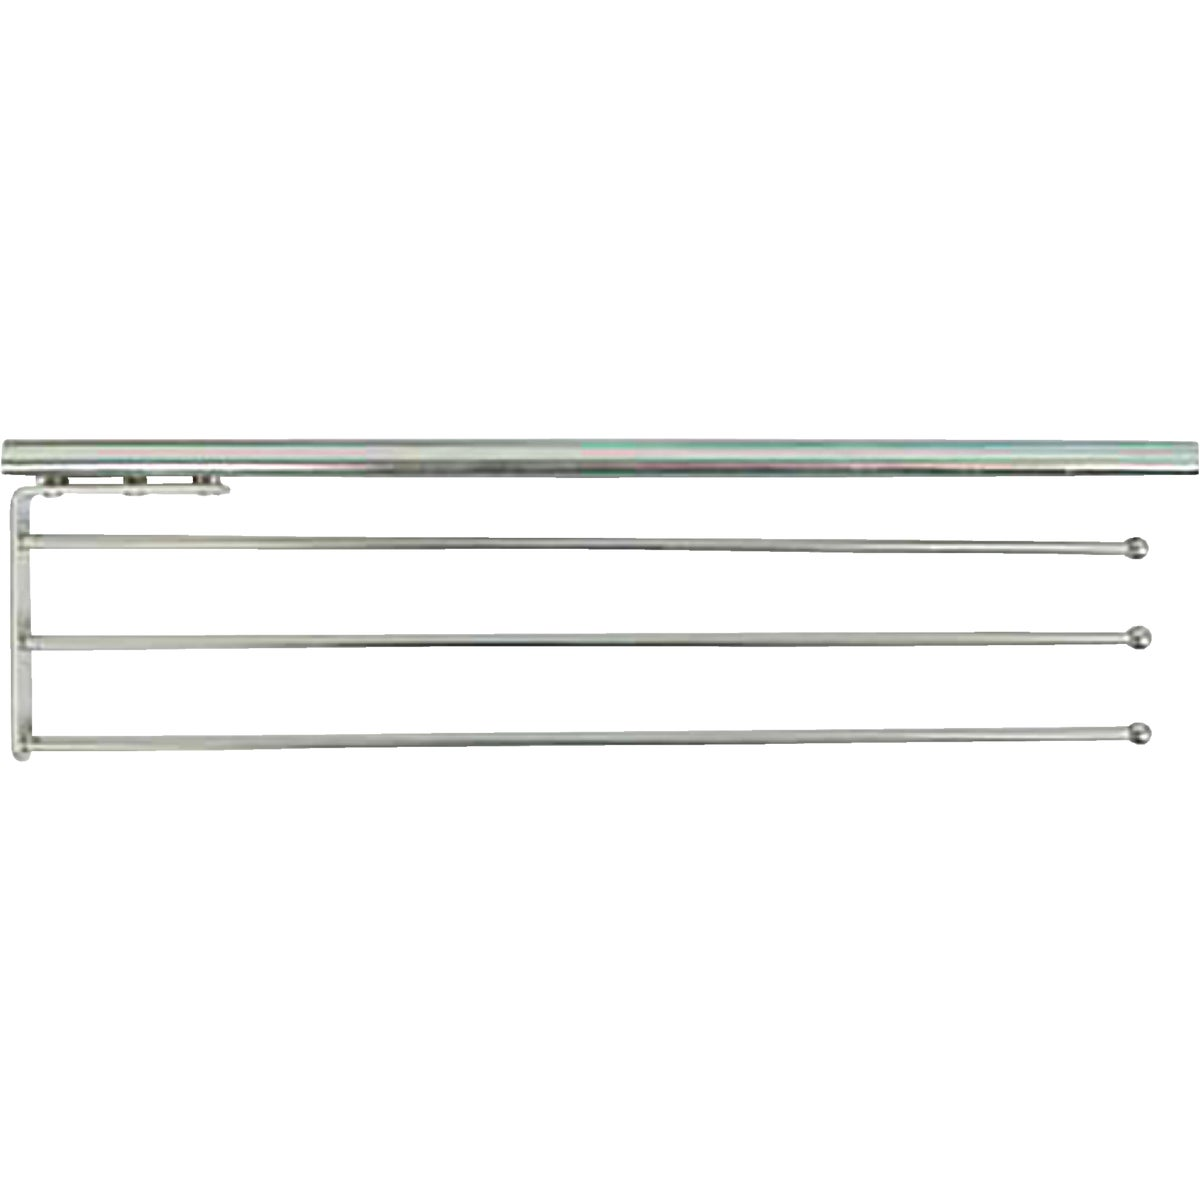 PULL-OUT TOWEL BAR - P-793-R-ANO by Knape & Vogt Mfg Co